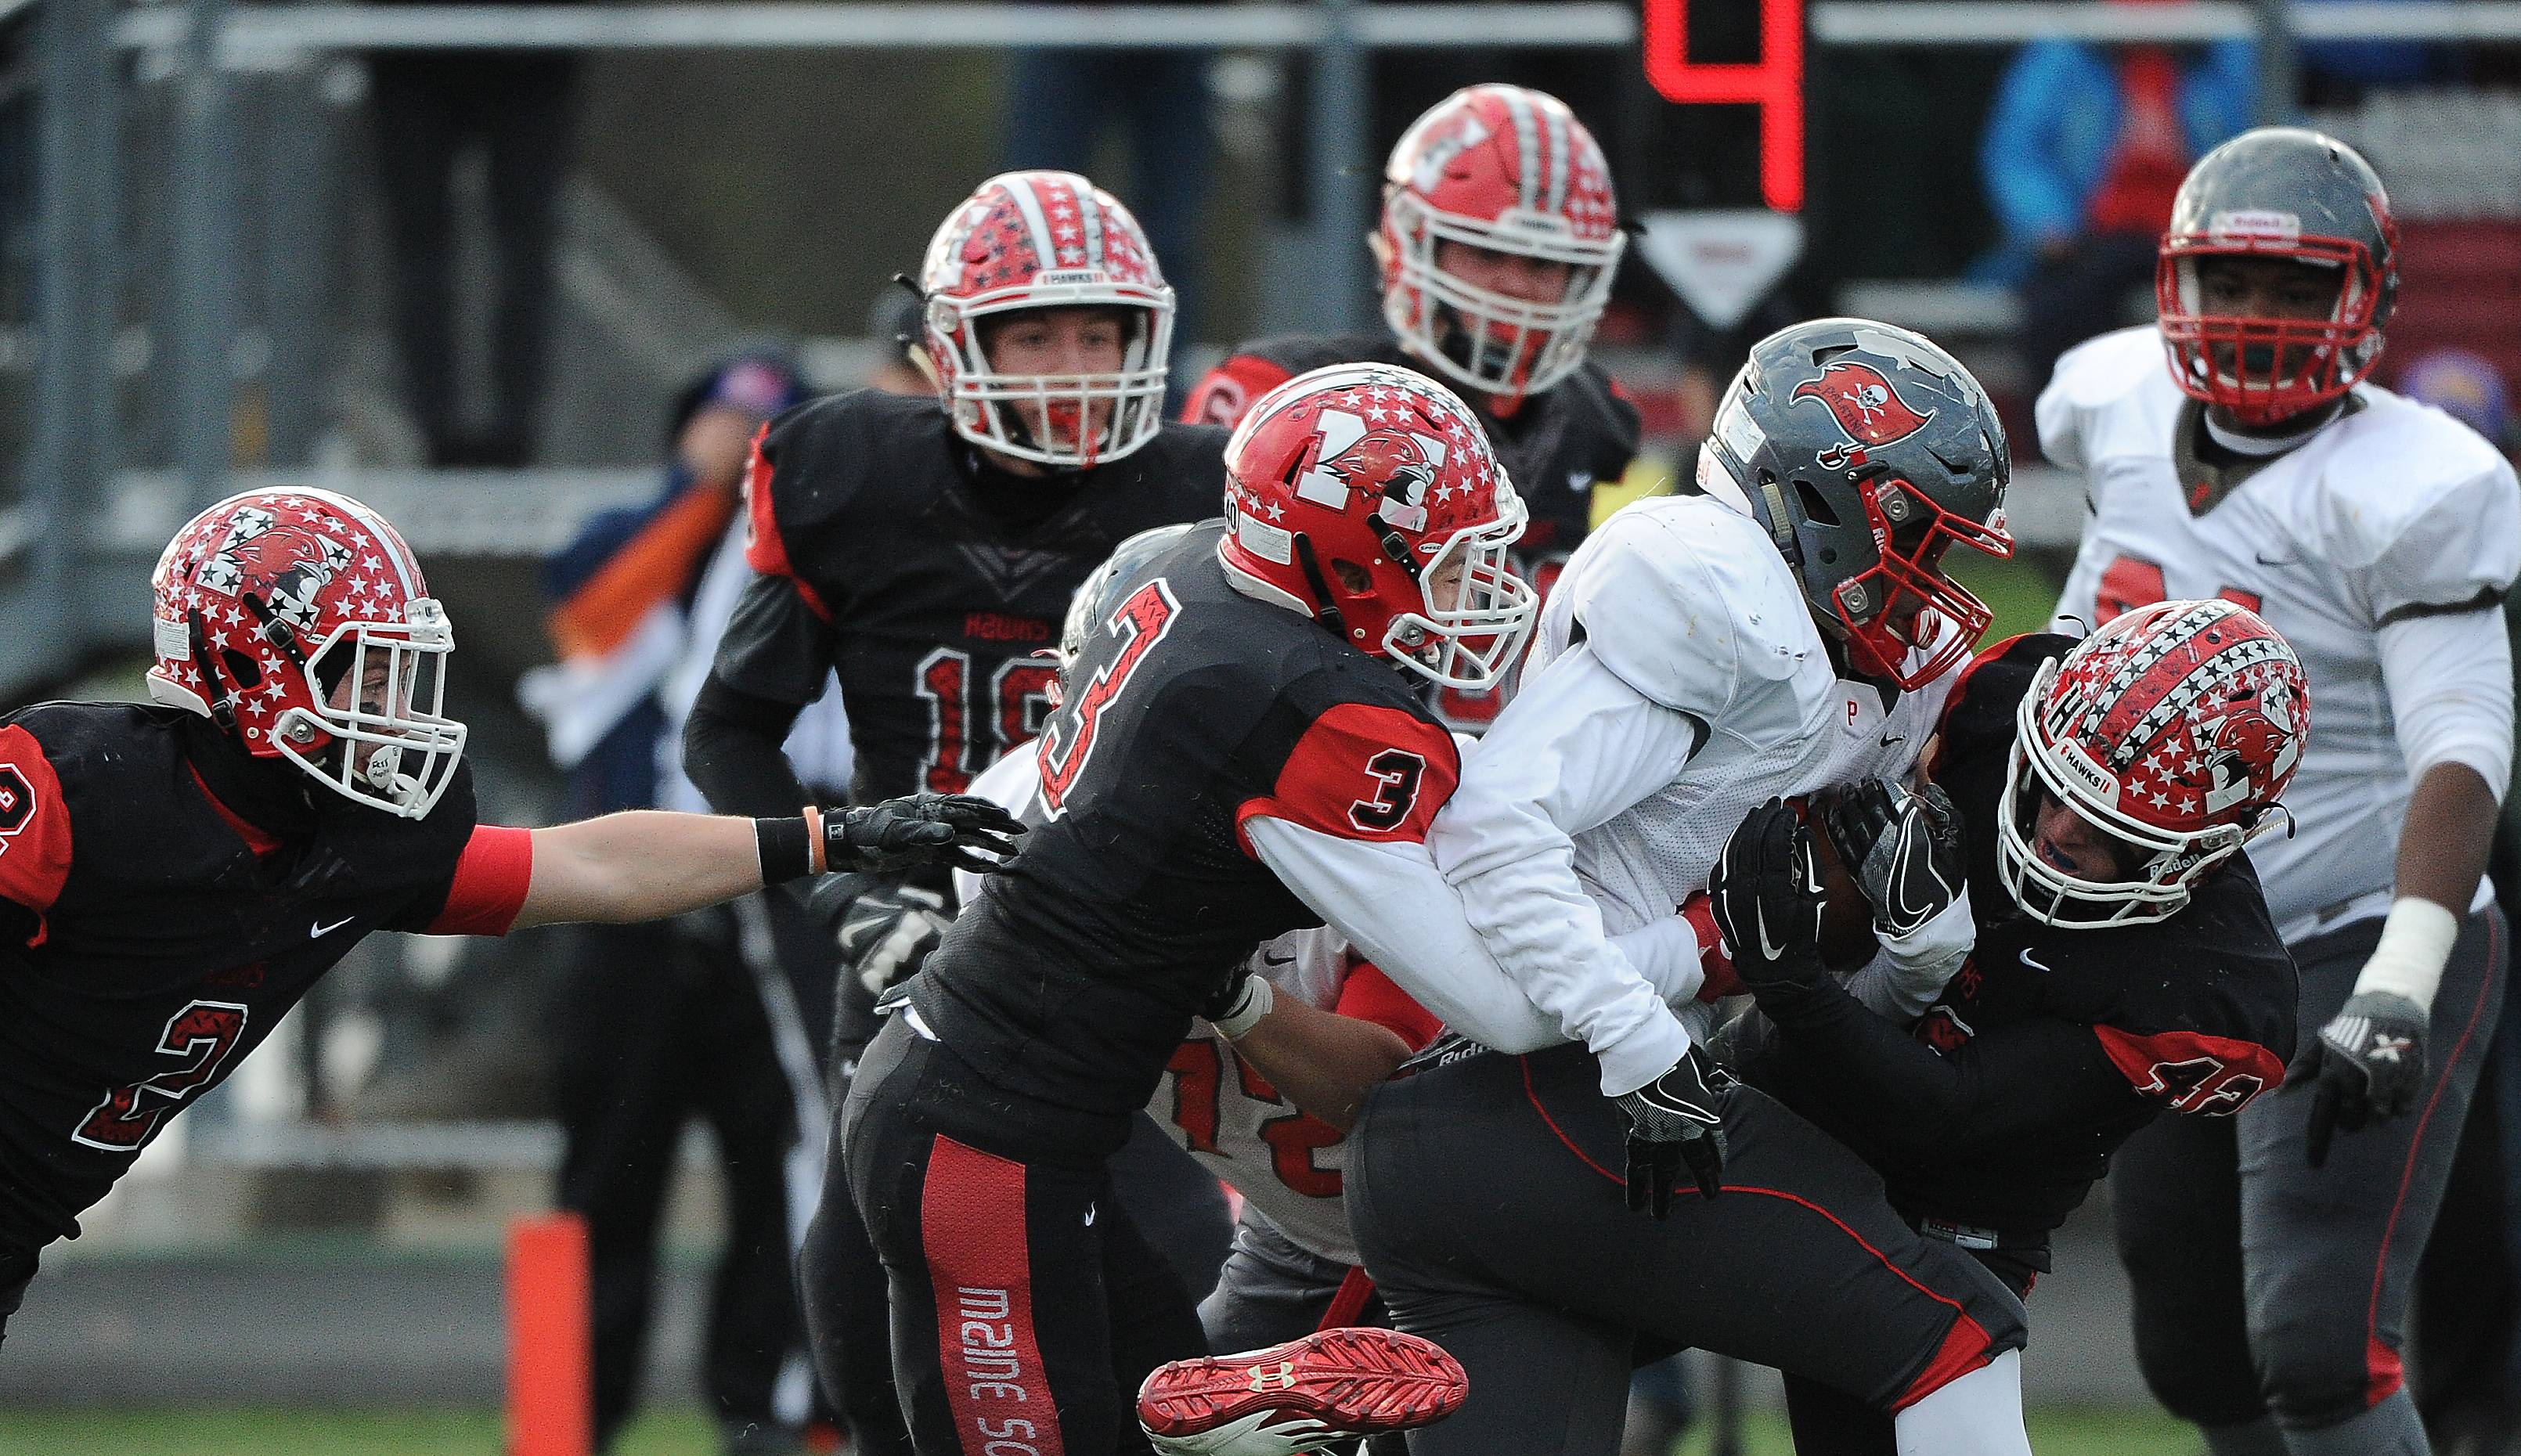 Palatine's Josh Turner is turned away from the end zone by a tough Maine South defense in Class 8A semifinal action. The Hawks face Loyola for the Class 8A state championship Saturday in Champaign.